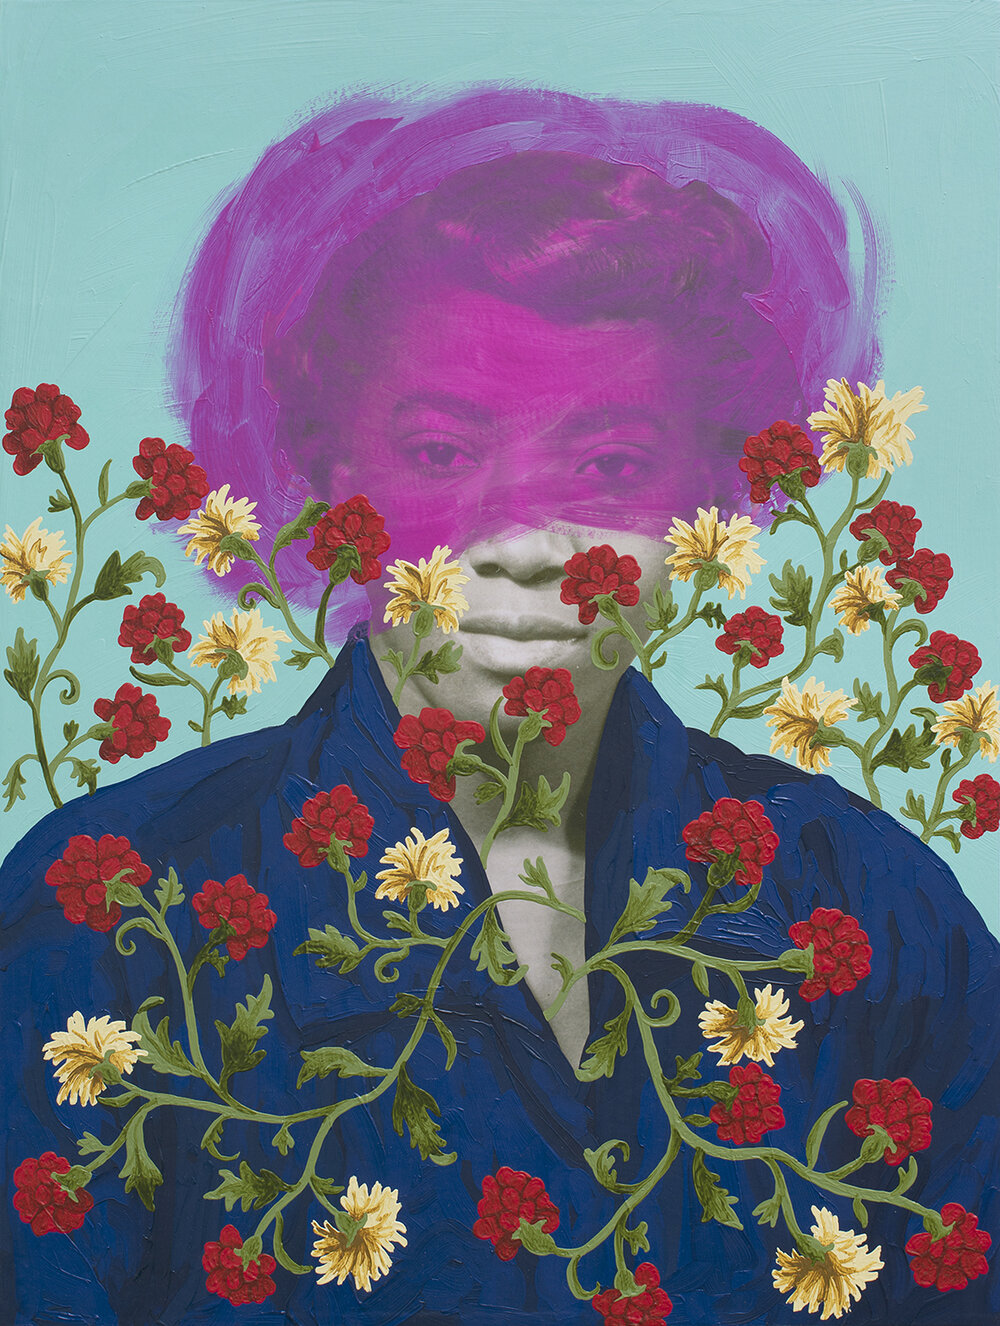 A painting that took an old photograph of a woman and painted over it with a blue shirtdress, flowers, and a transparent pink smear around her face. It almost feels like a saintly portrait, but not quite.